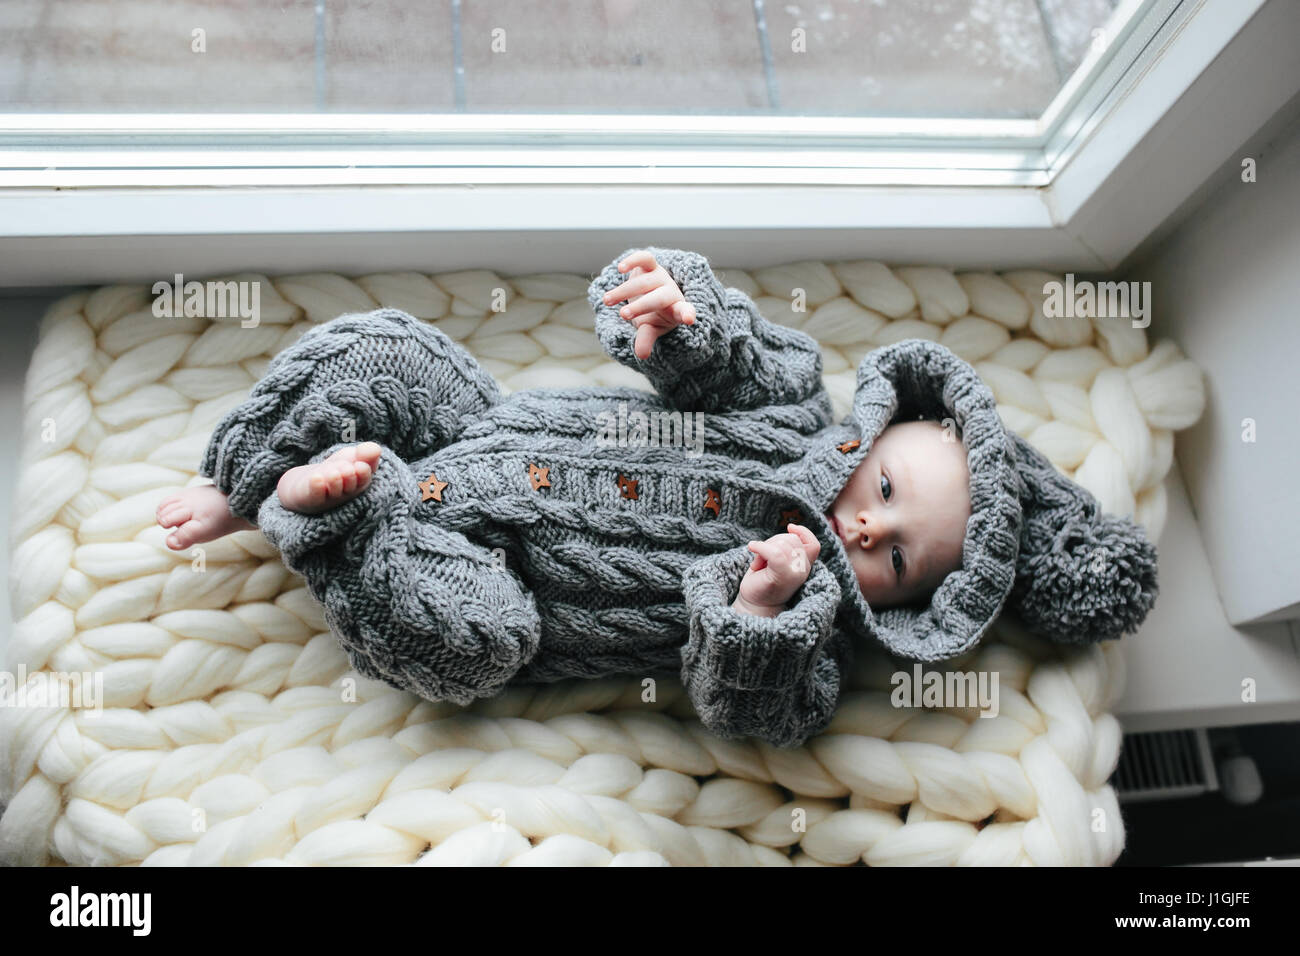 Small baby in knitted clothes - Stock Image